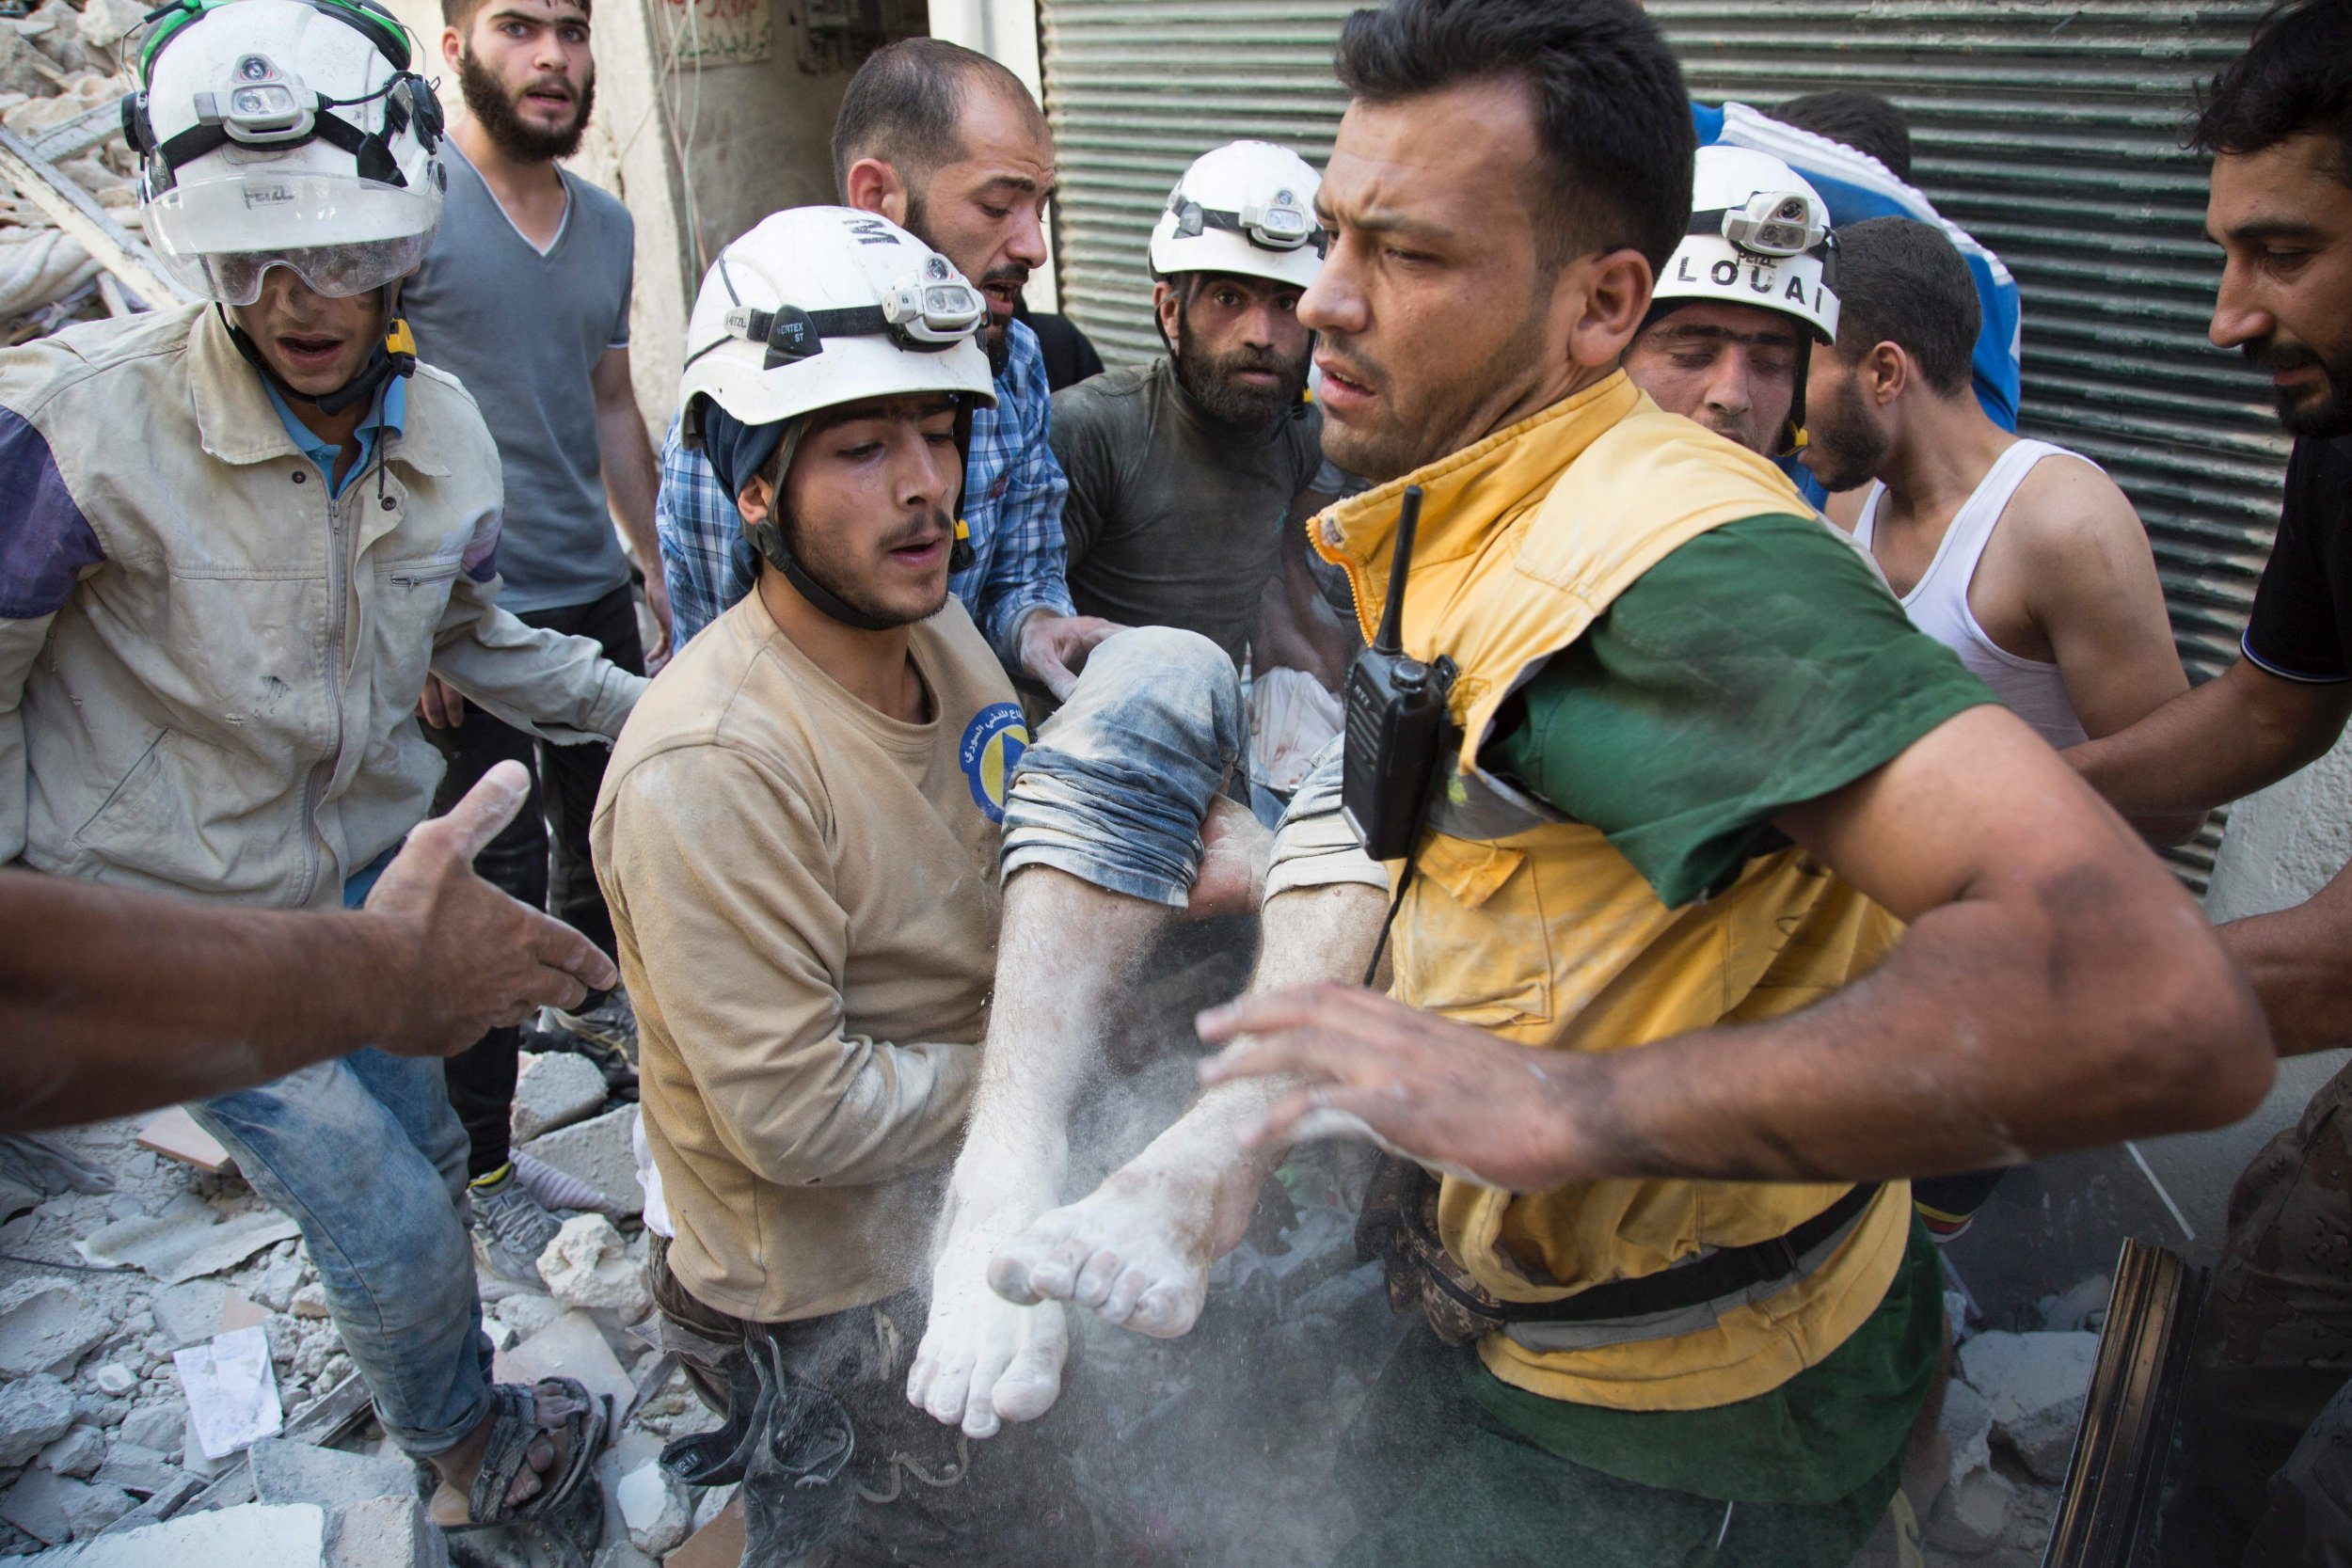 White Helmets rescue a body from rubble in Aleppo